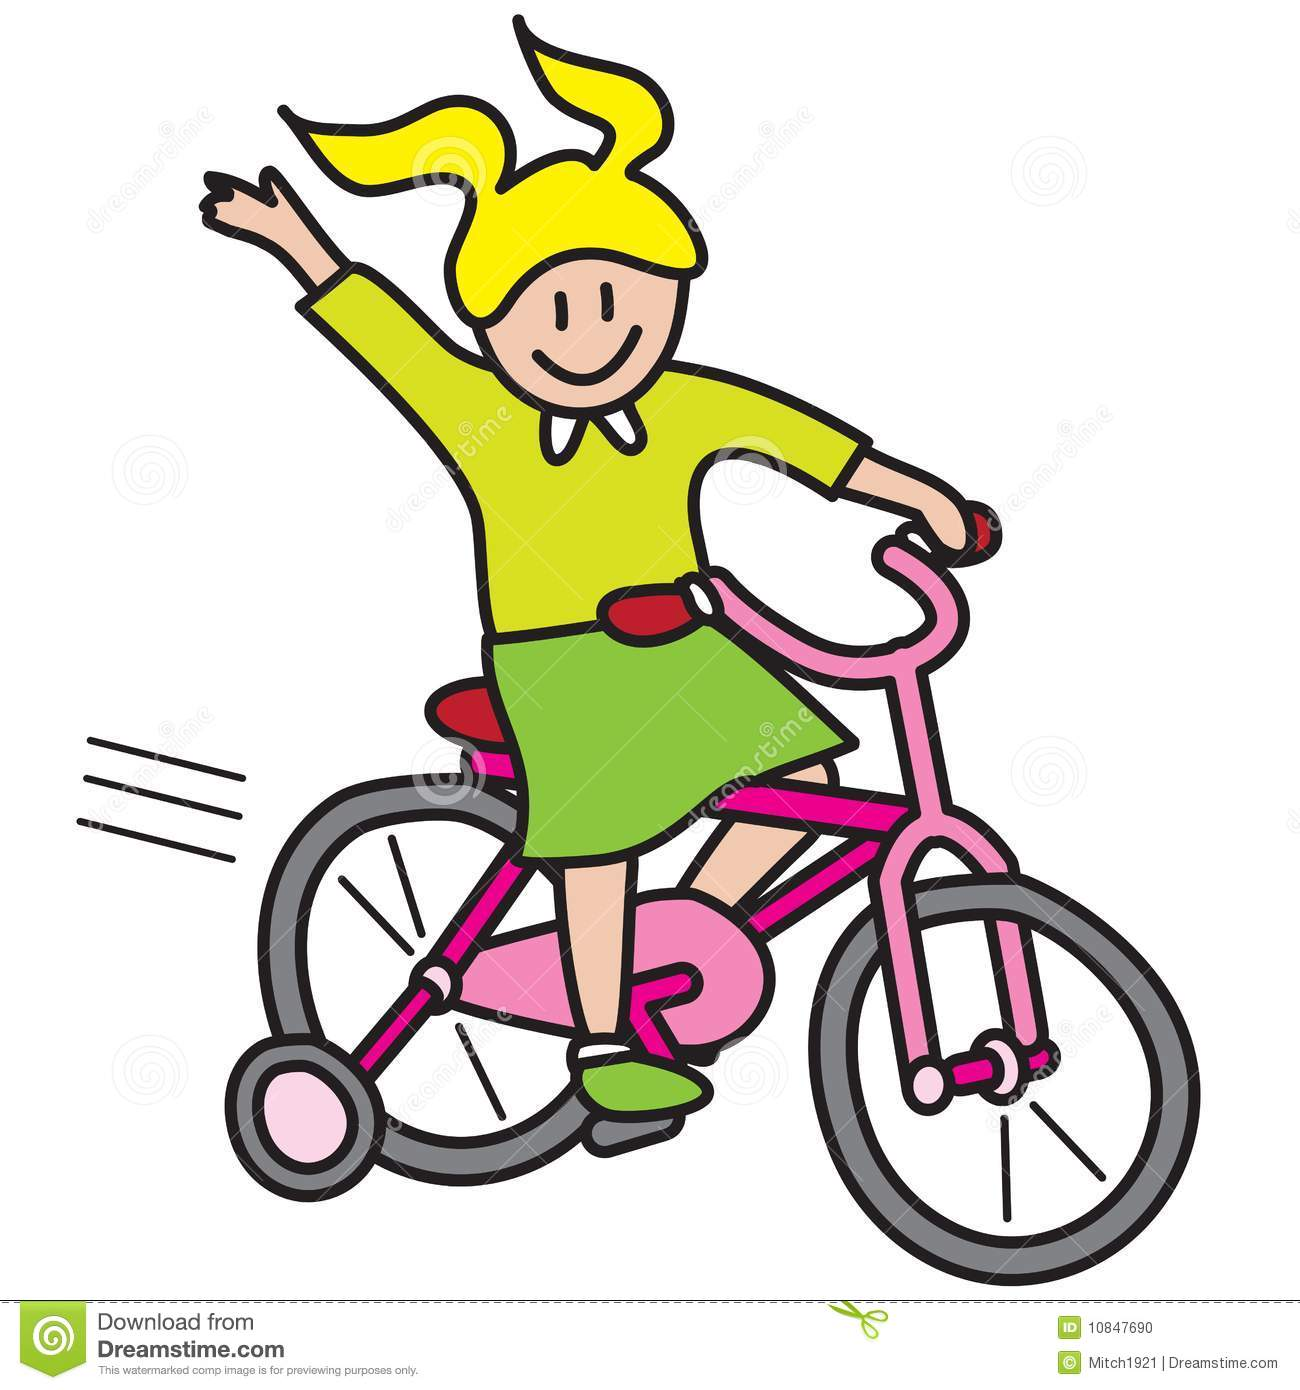 Clip Art Riding A Bike.